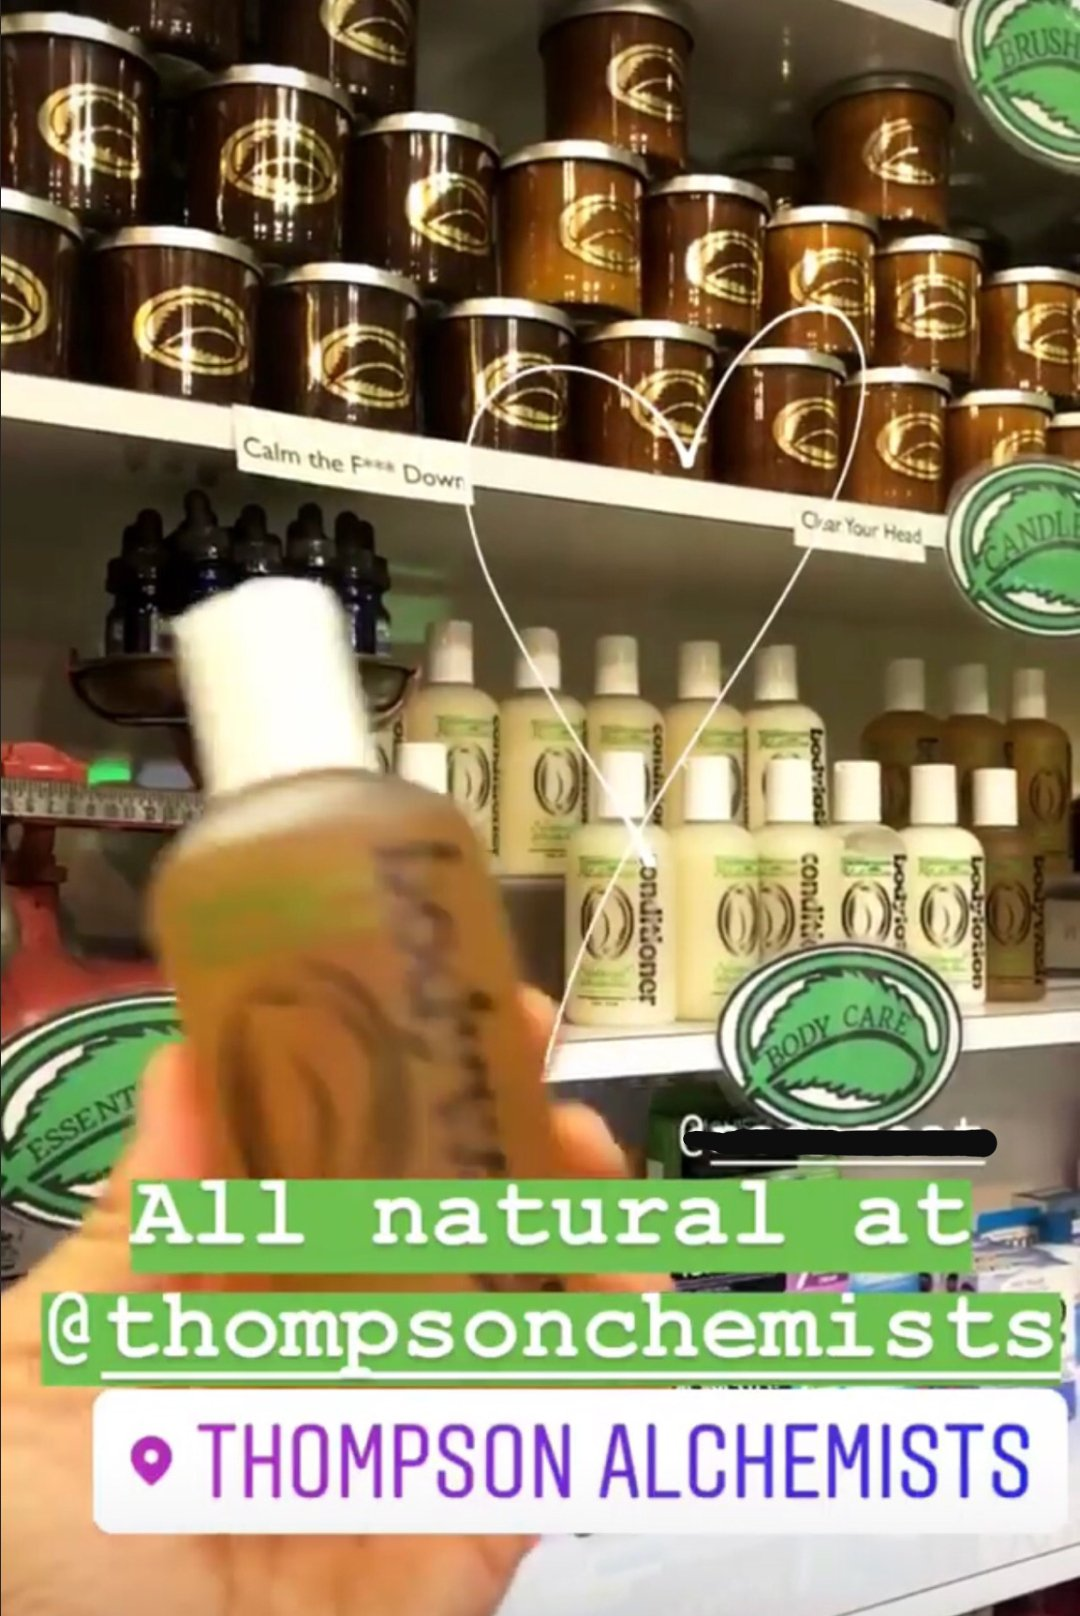 Thompson Alchemists Brand